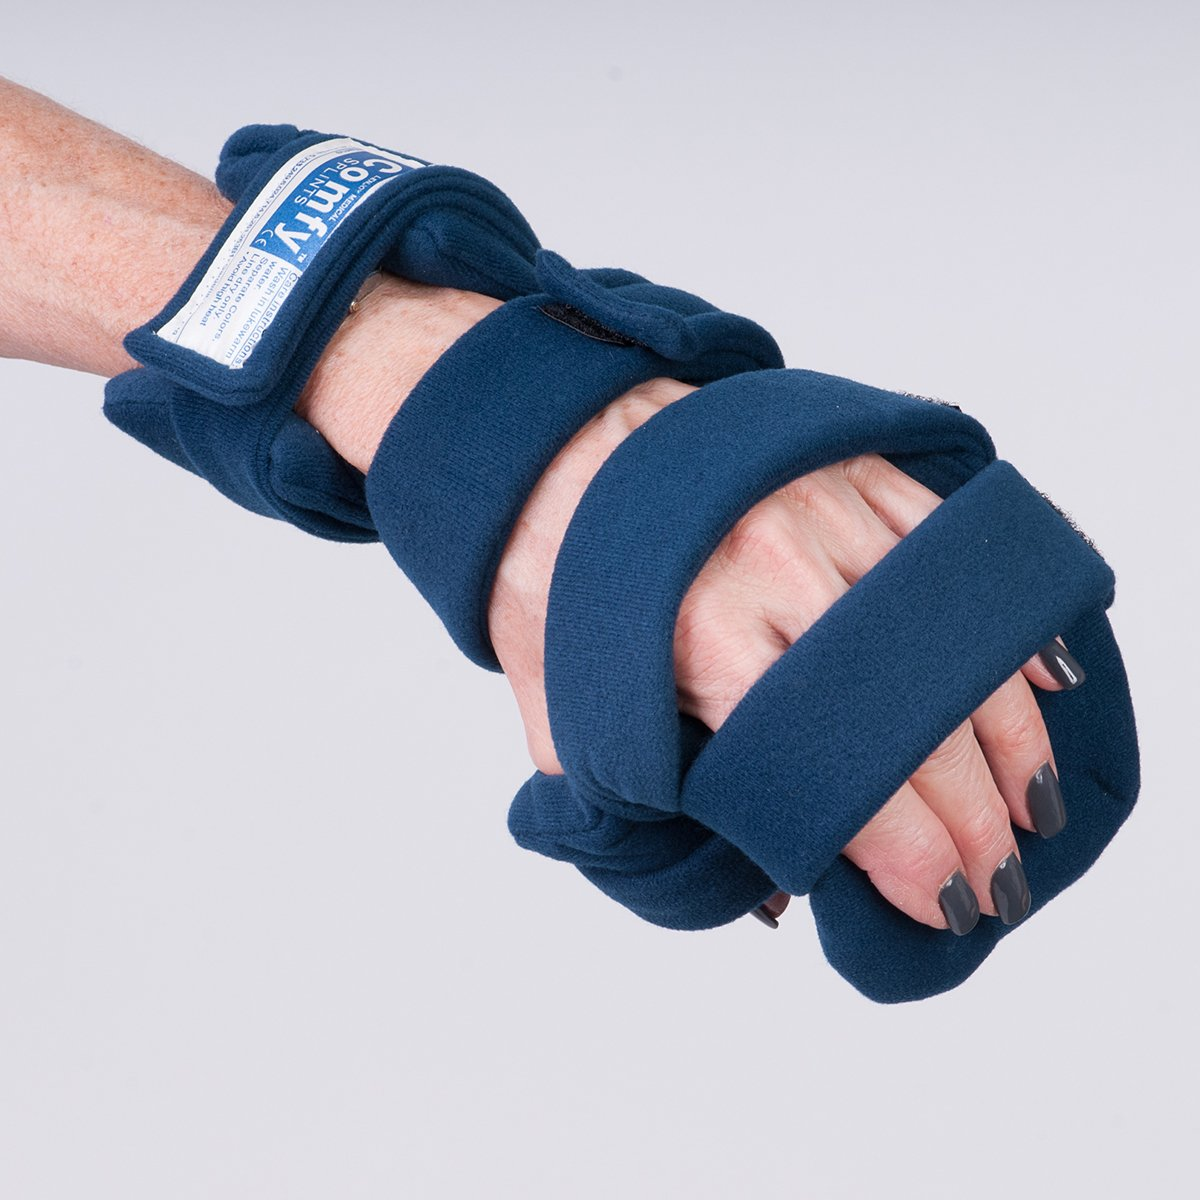 Comfy Splints Progressive Rest Hand W/ Five Straps (Finger Separator Included) - Adult Small, Right - 1 Each / Each - 24-3318 by Comfy Splints (Image #1)